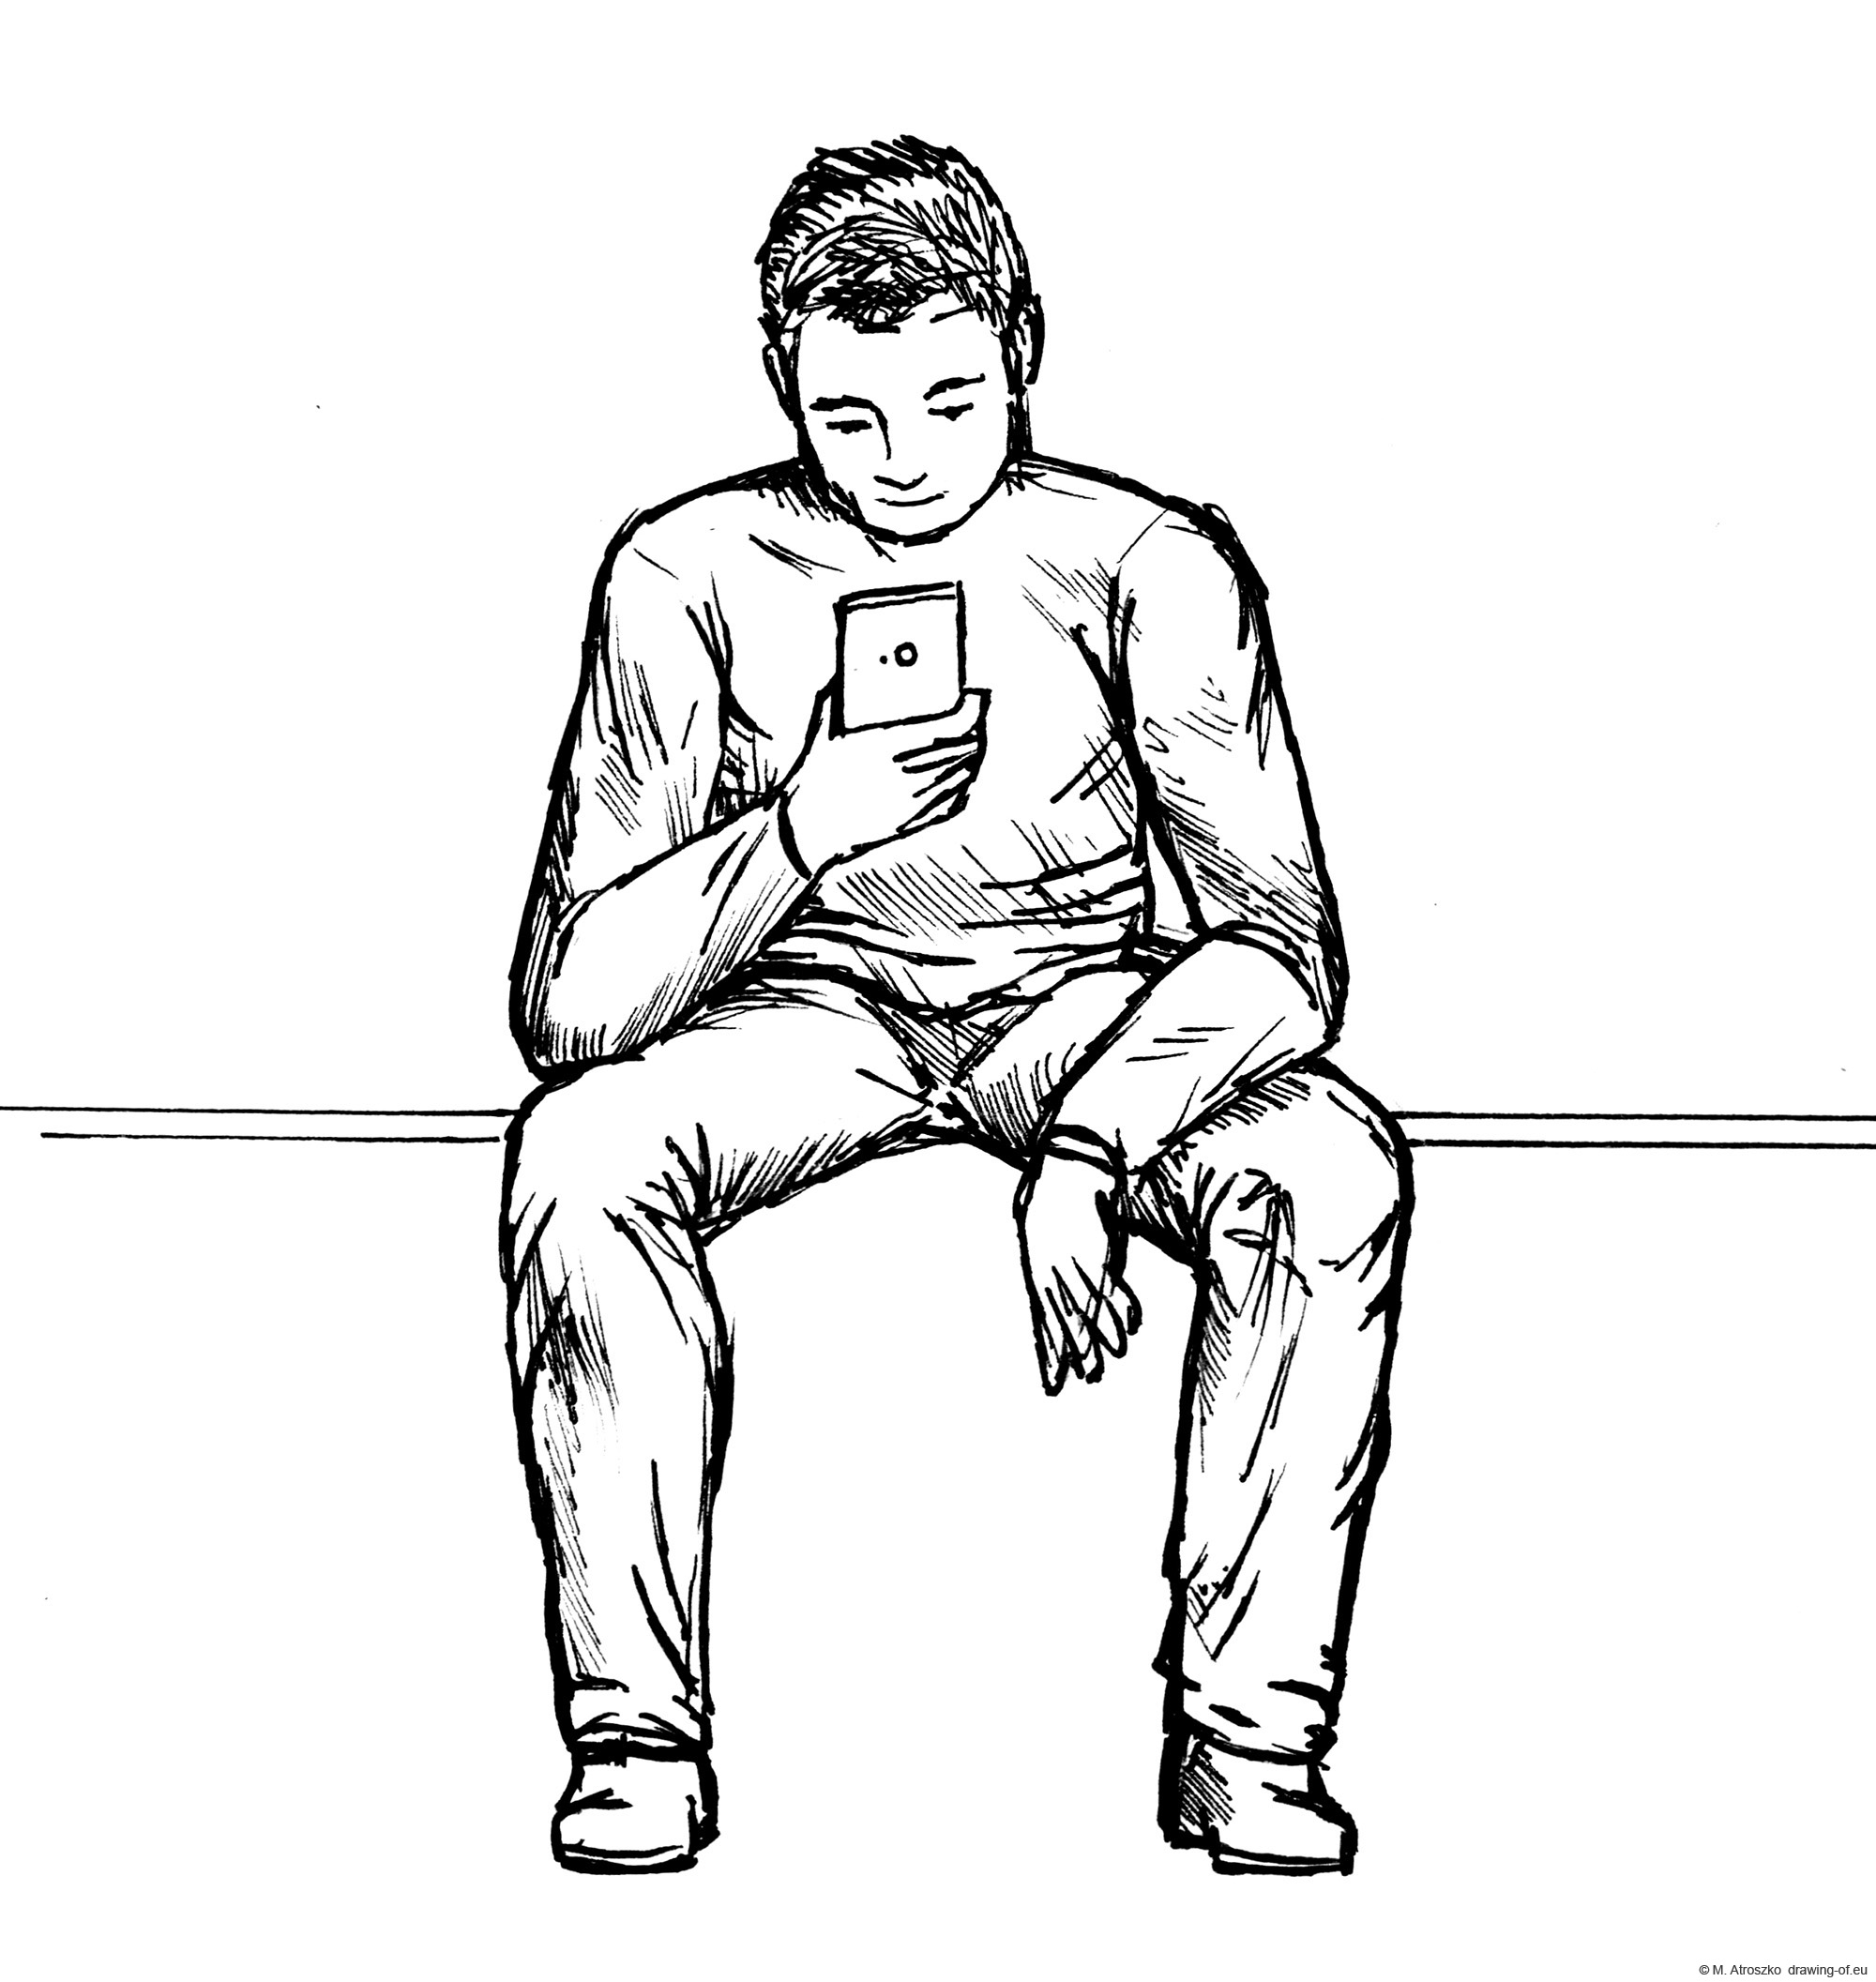 Man sitting on bench with smartphone